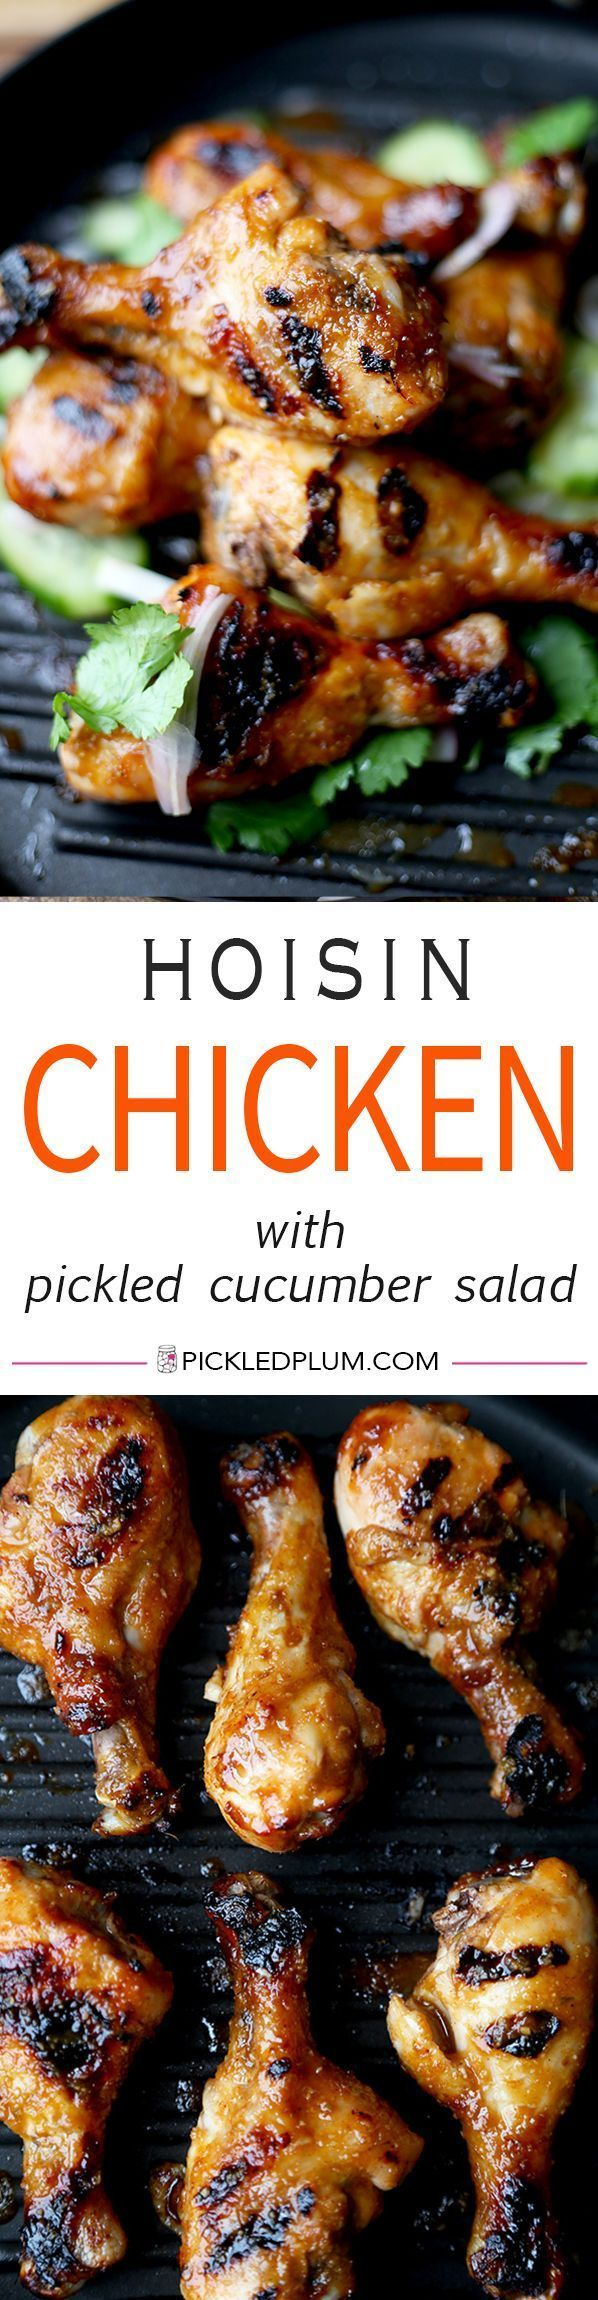 Hoisin Chicken with Pickled Cucumber Salad - Baked hoisin chicken drumsticks glazed with a sweet and tangy hoisin sauce thats finger licking good! Recipe, chicken, Chinese, dinner, main, poultry | pickledplum.com